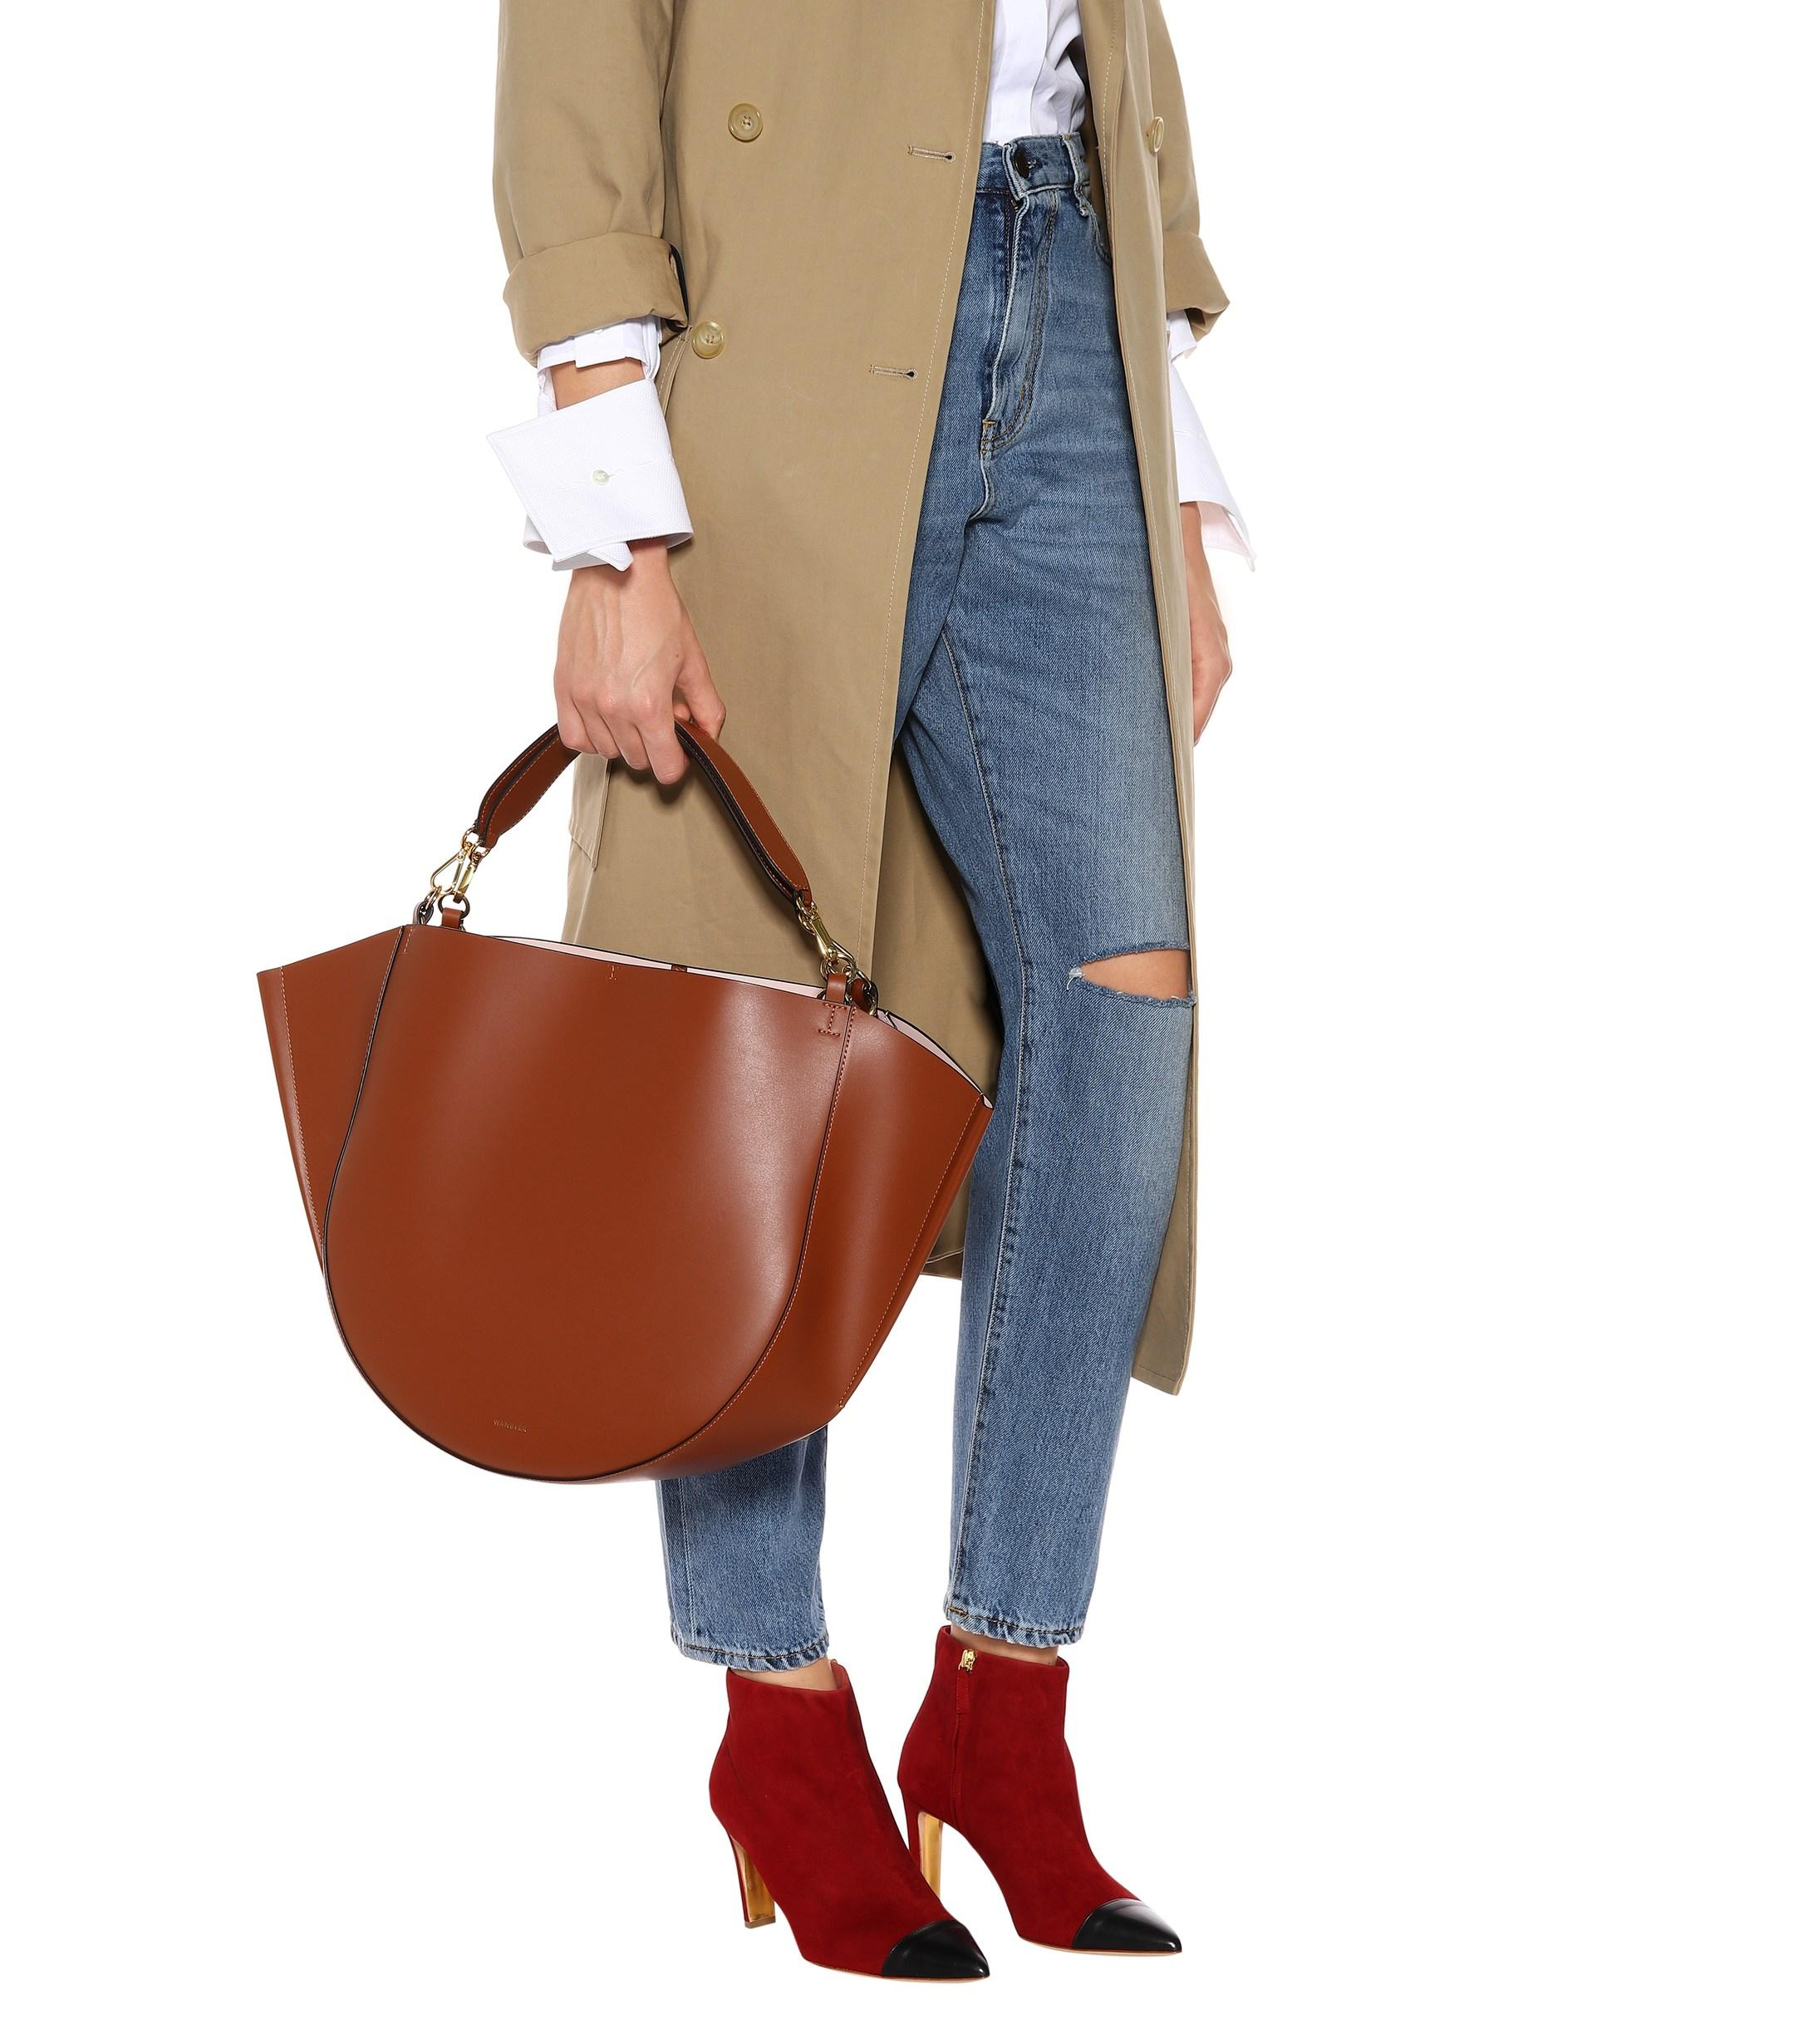 d08bac85643b Wandler - Brown Mia Leather Tote - Lyst. View fullscreen